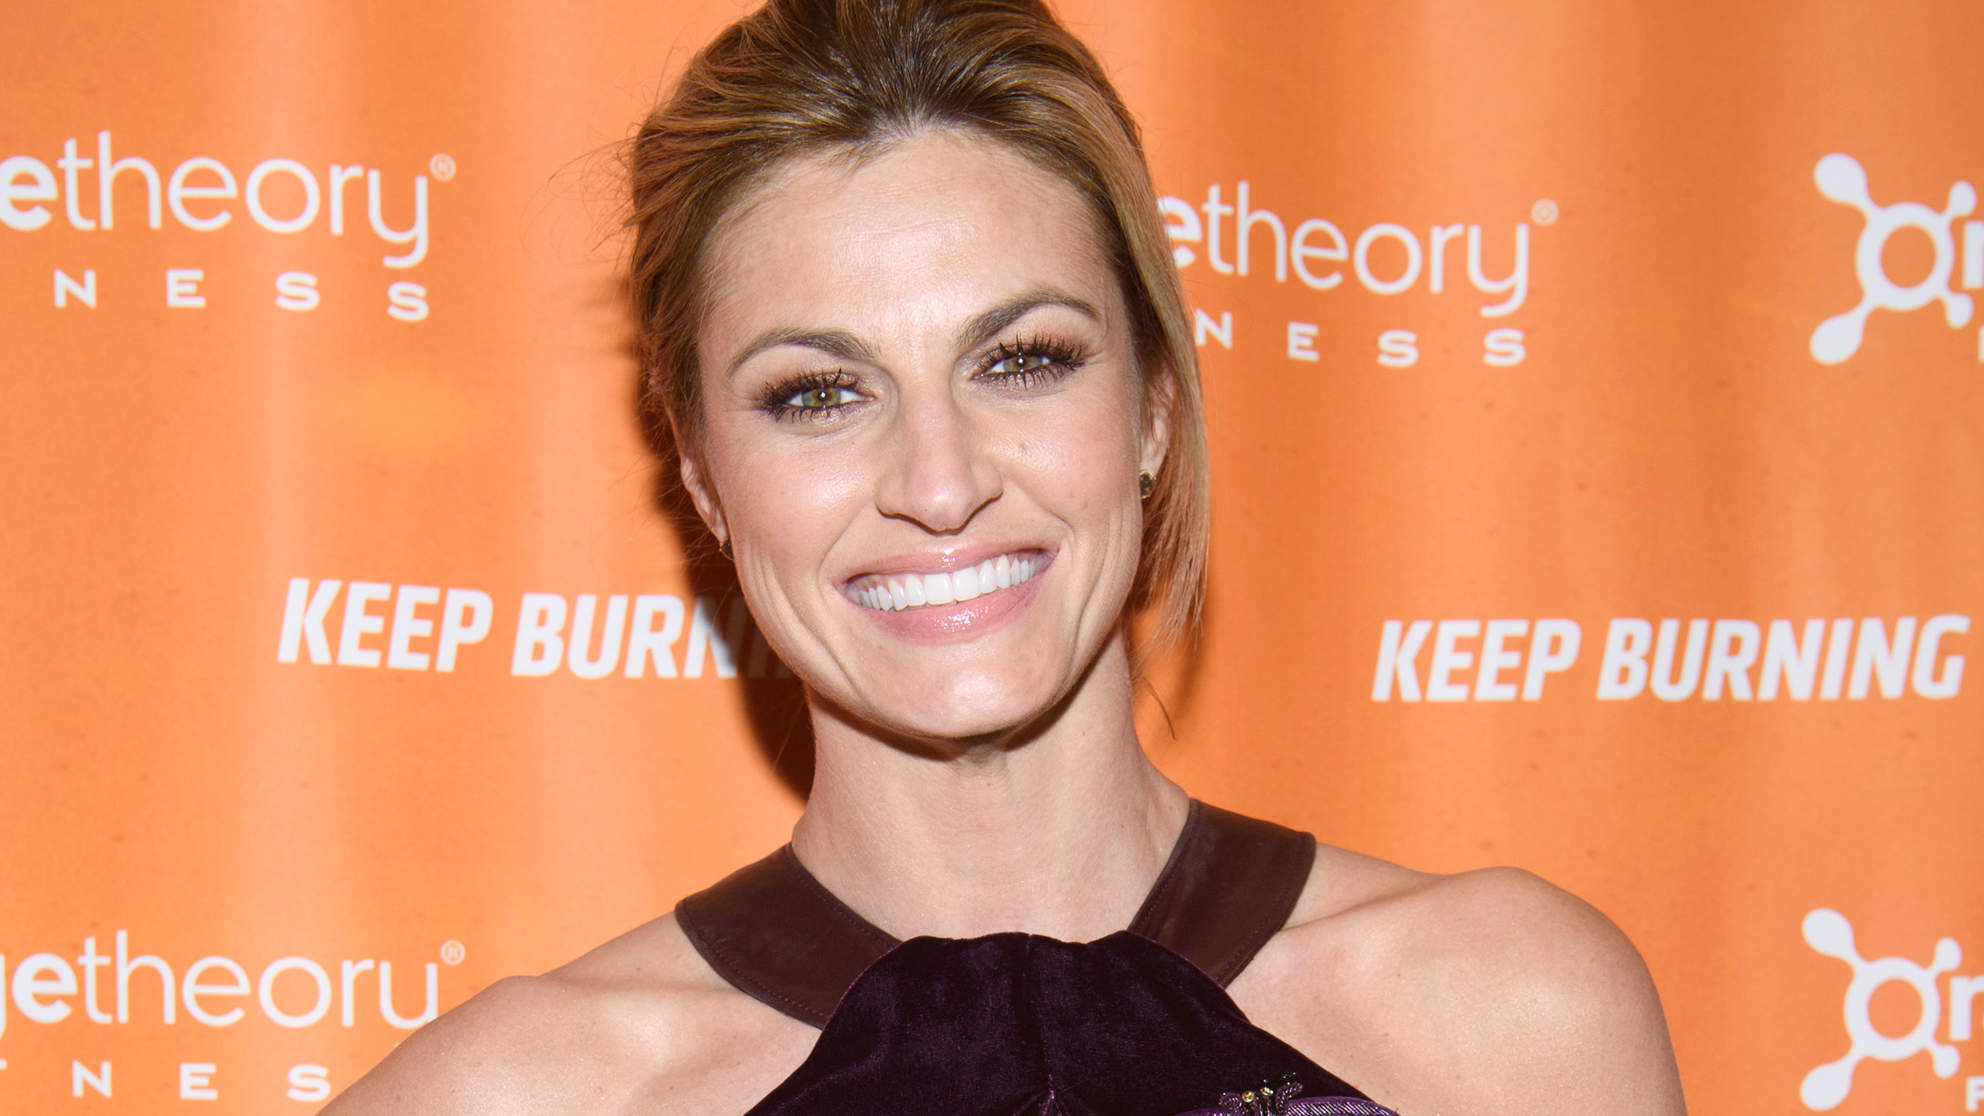 Cervical Cancer Survivor Erin Andrews Urges Women to Check In with Their Doctor: 'Stop with the Excuses'